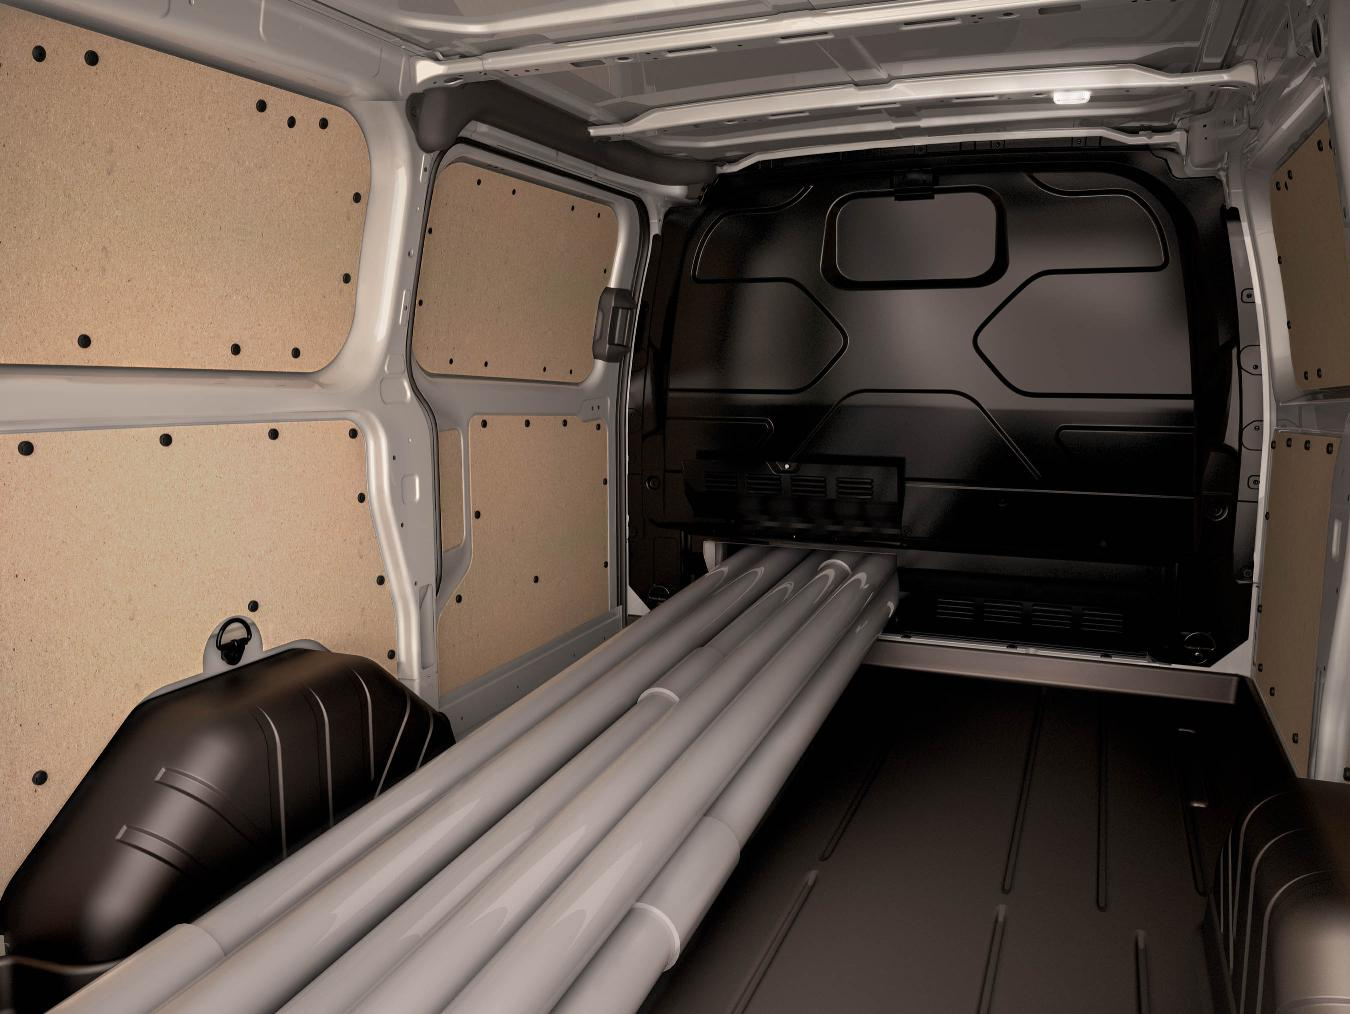 ford transit custom previews new commercial van range photos 1 of 4. Black Bedroom Furniture Sets. Home Design Ideas